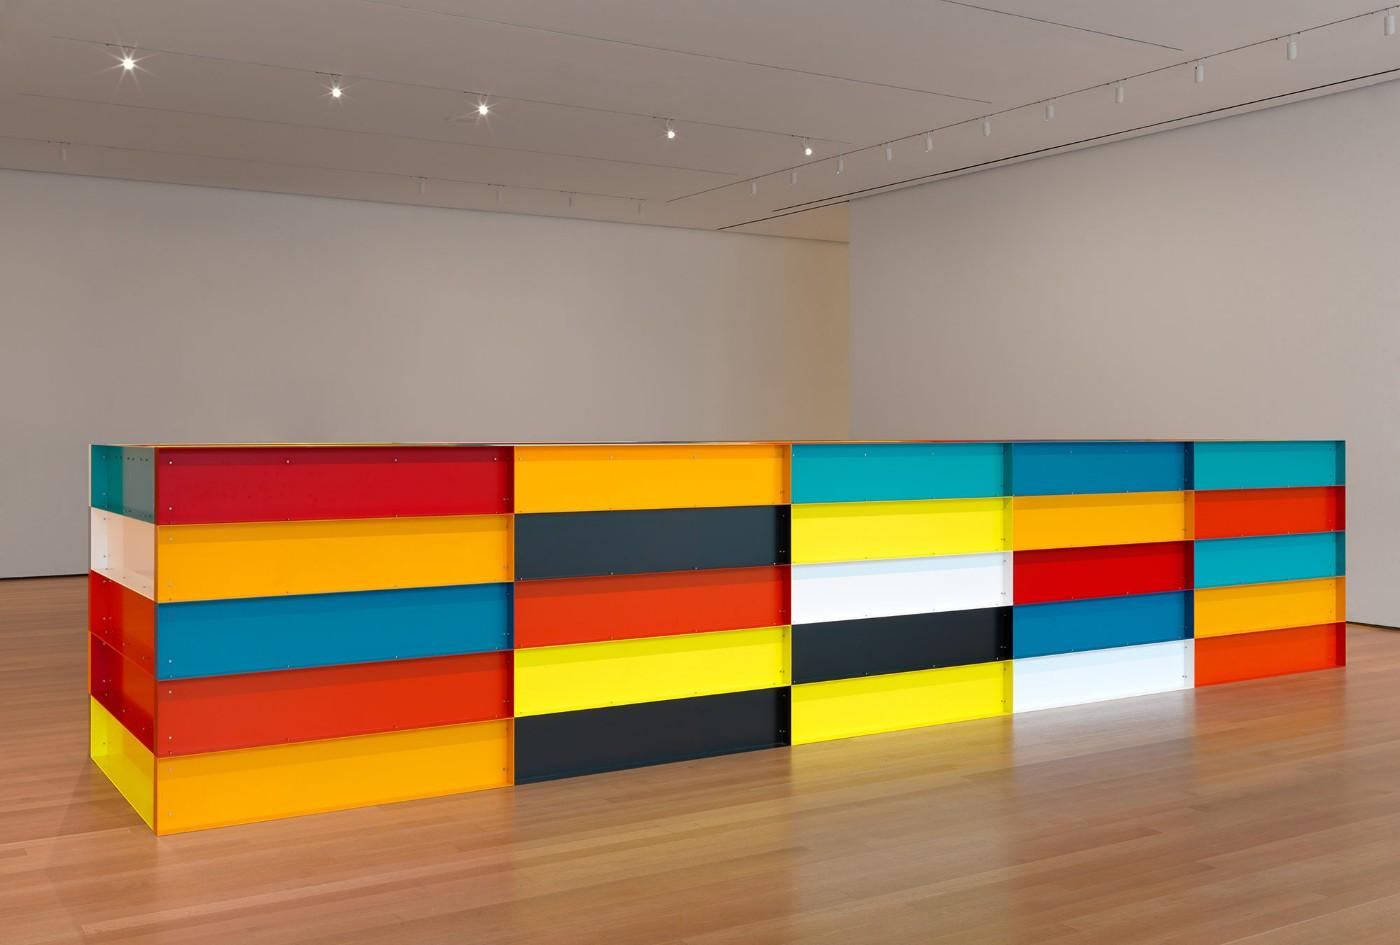 Donald Judd. Untitled. 1991